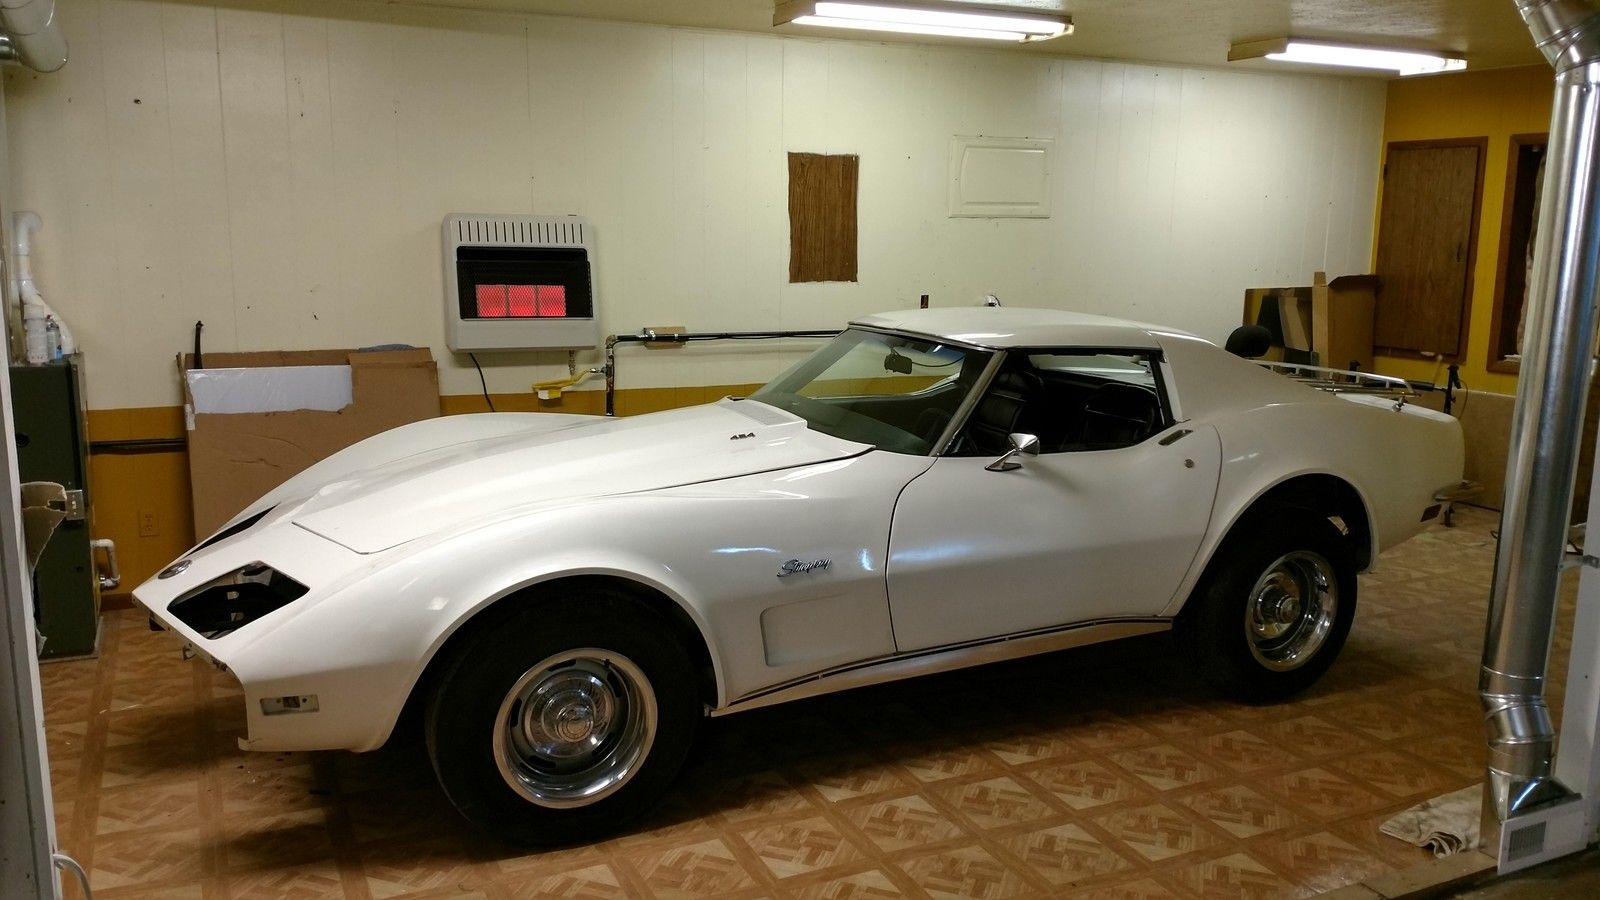 Picture of 1973 chevrolet corvette coupe exterior - Picture Of 1973 Chevrolet Corvette Coupe Exterior 21